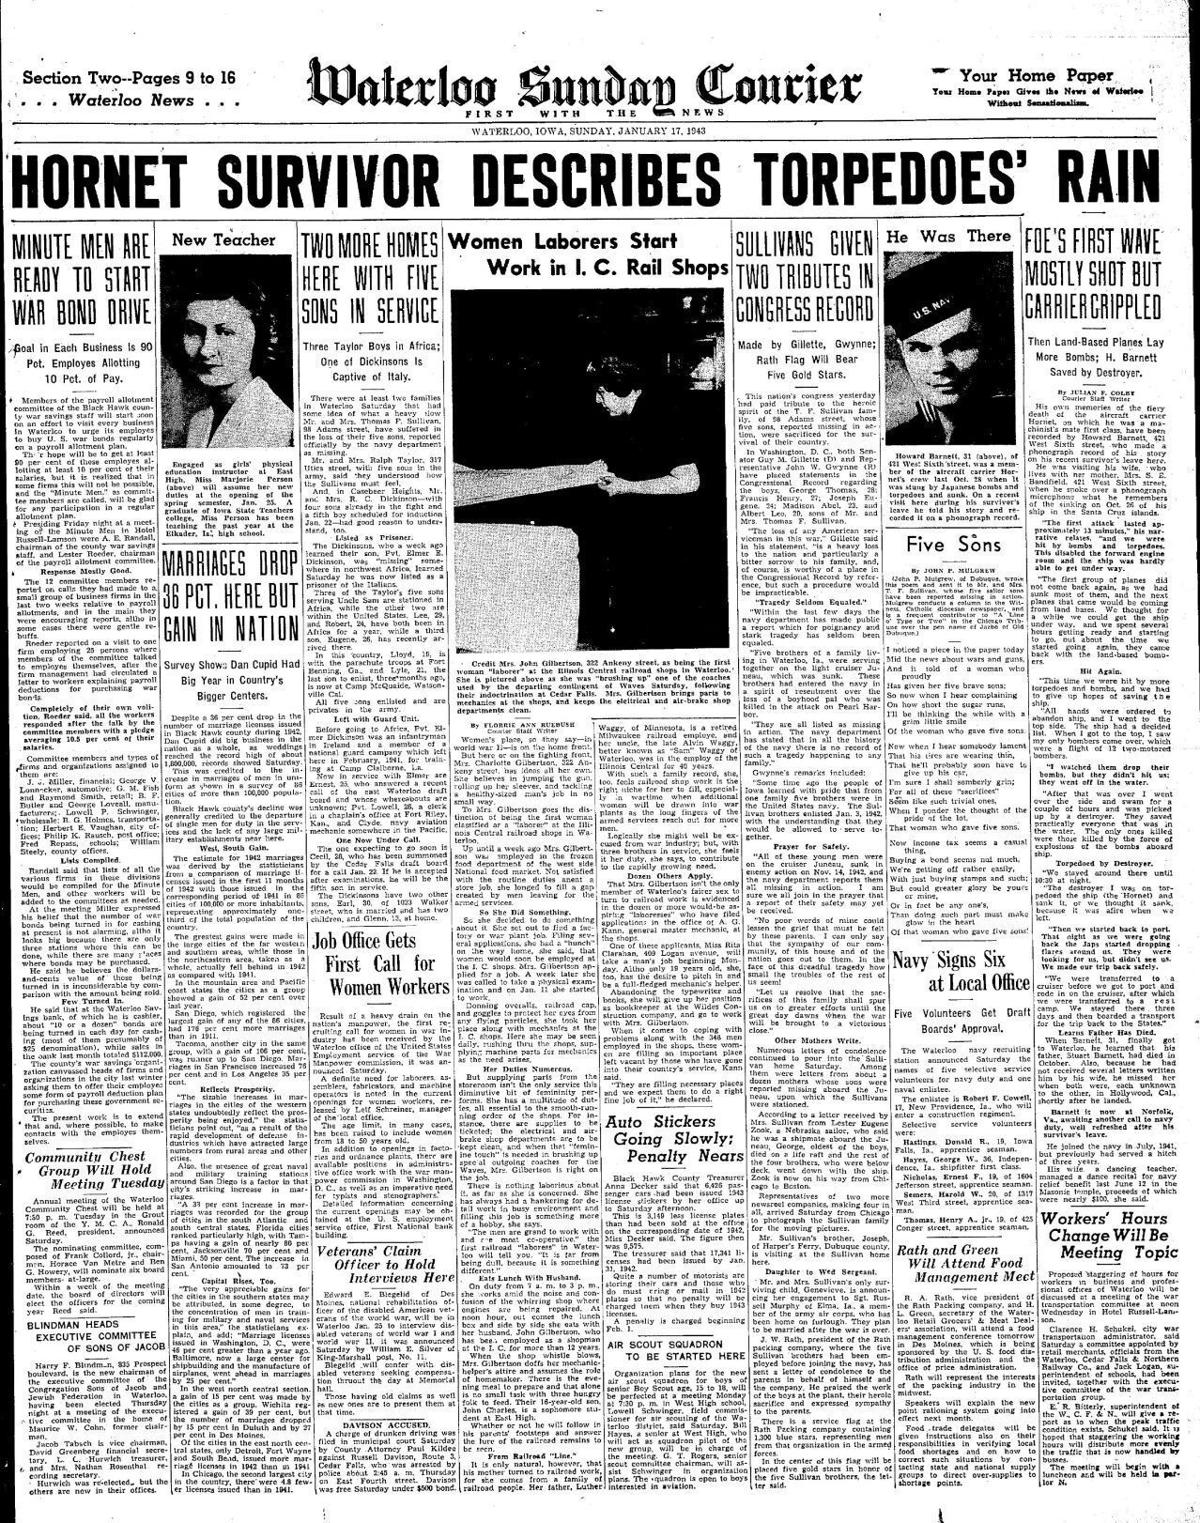 Courier Jan. 17, 1943